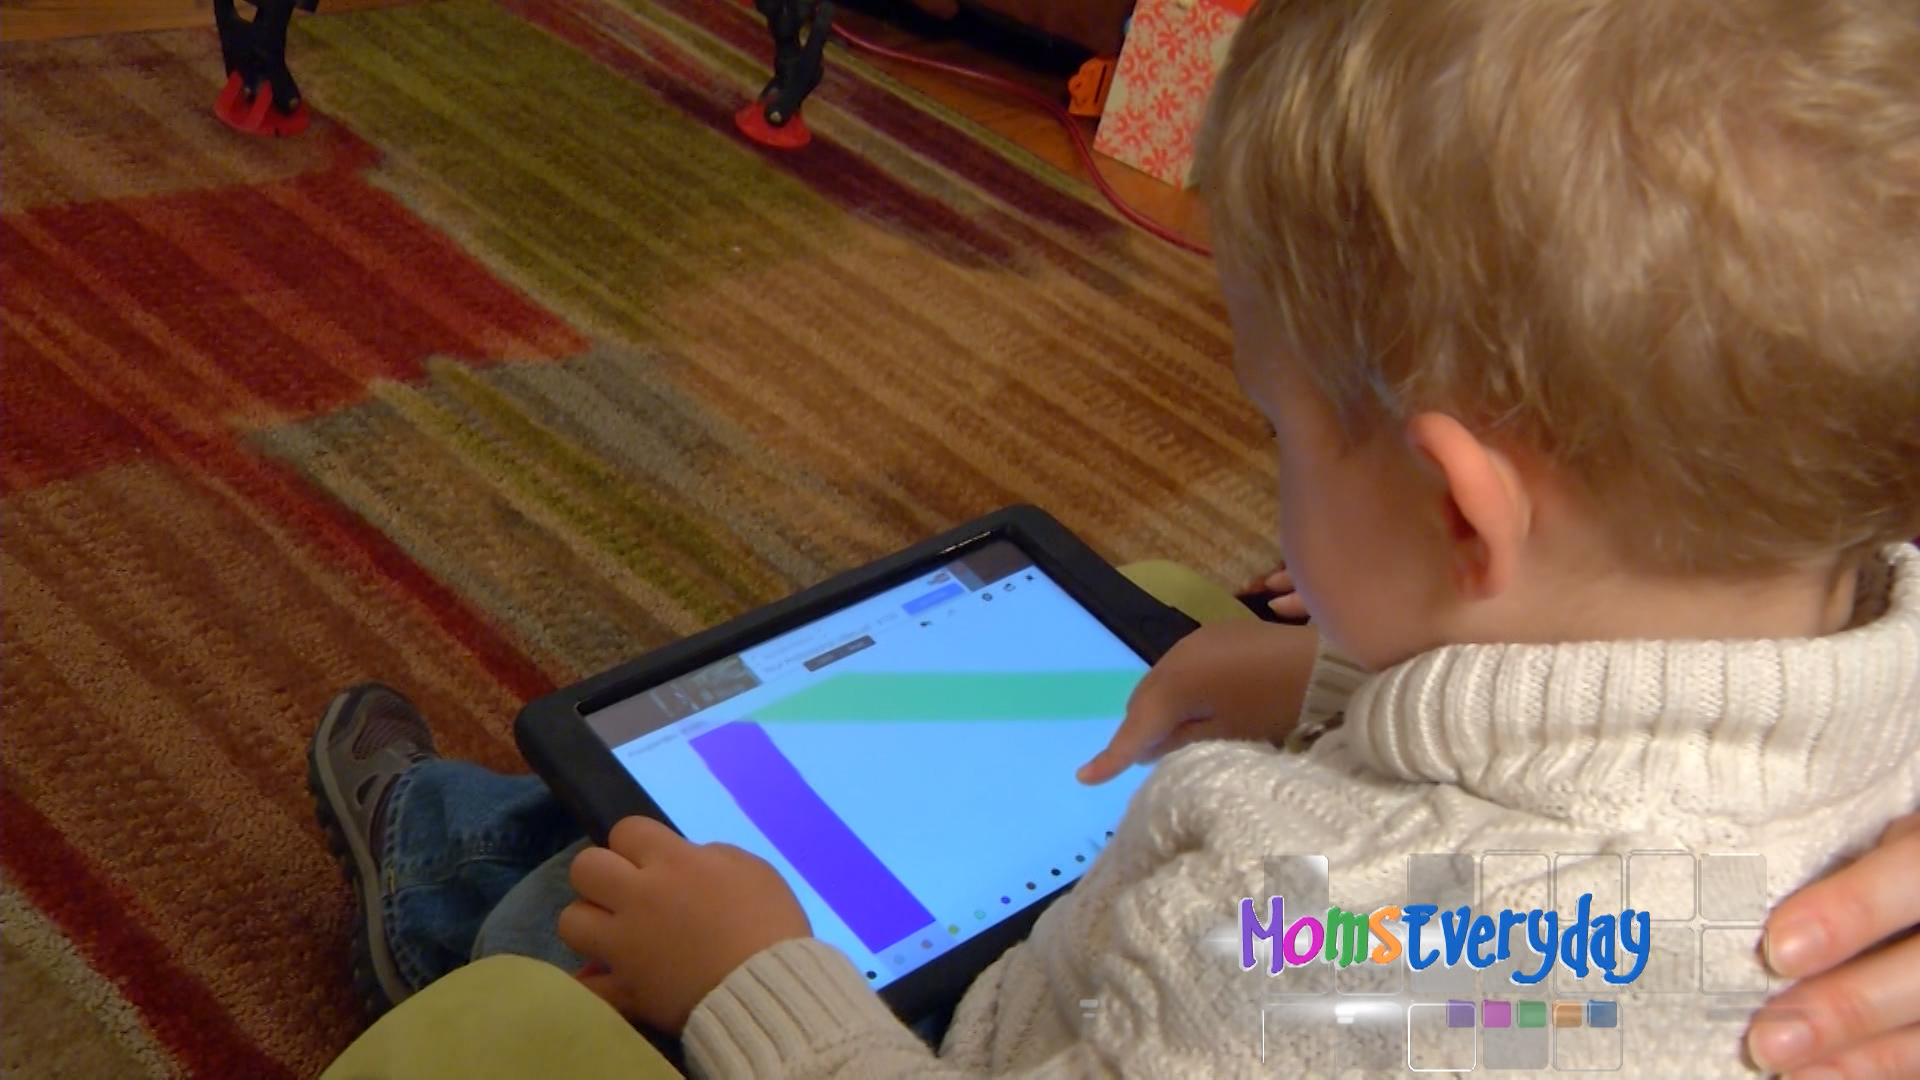 Parental interaction necessary with toddlers and touchscreens